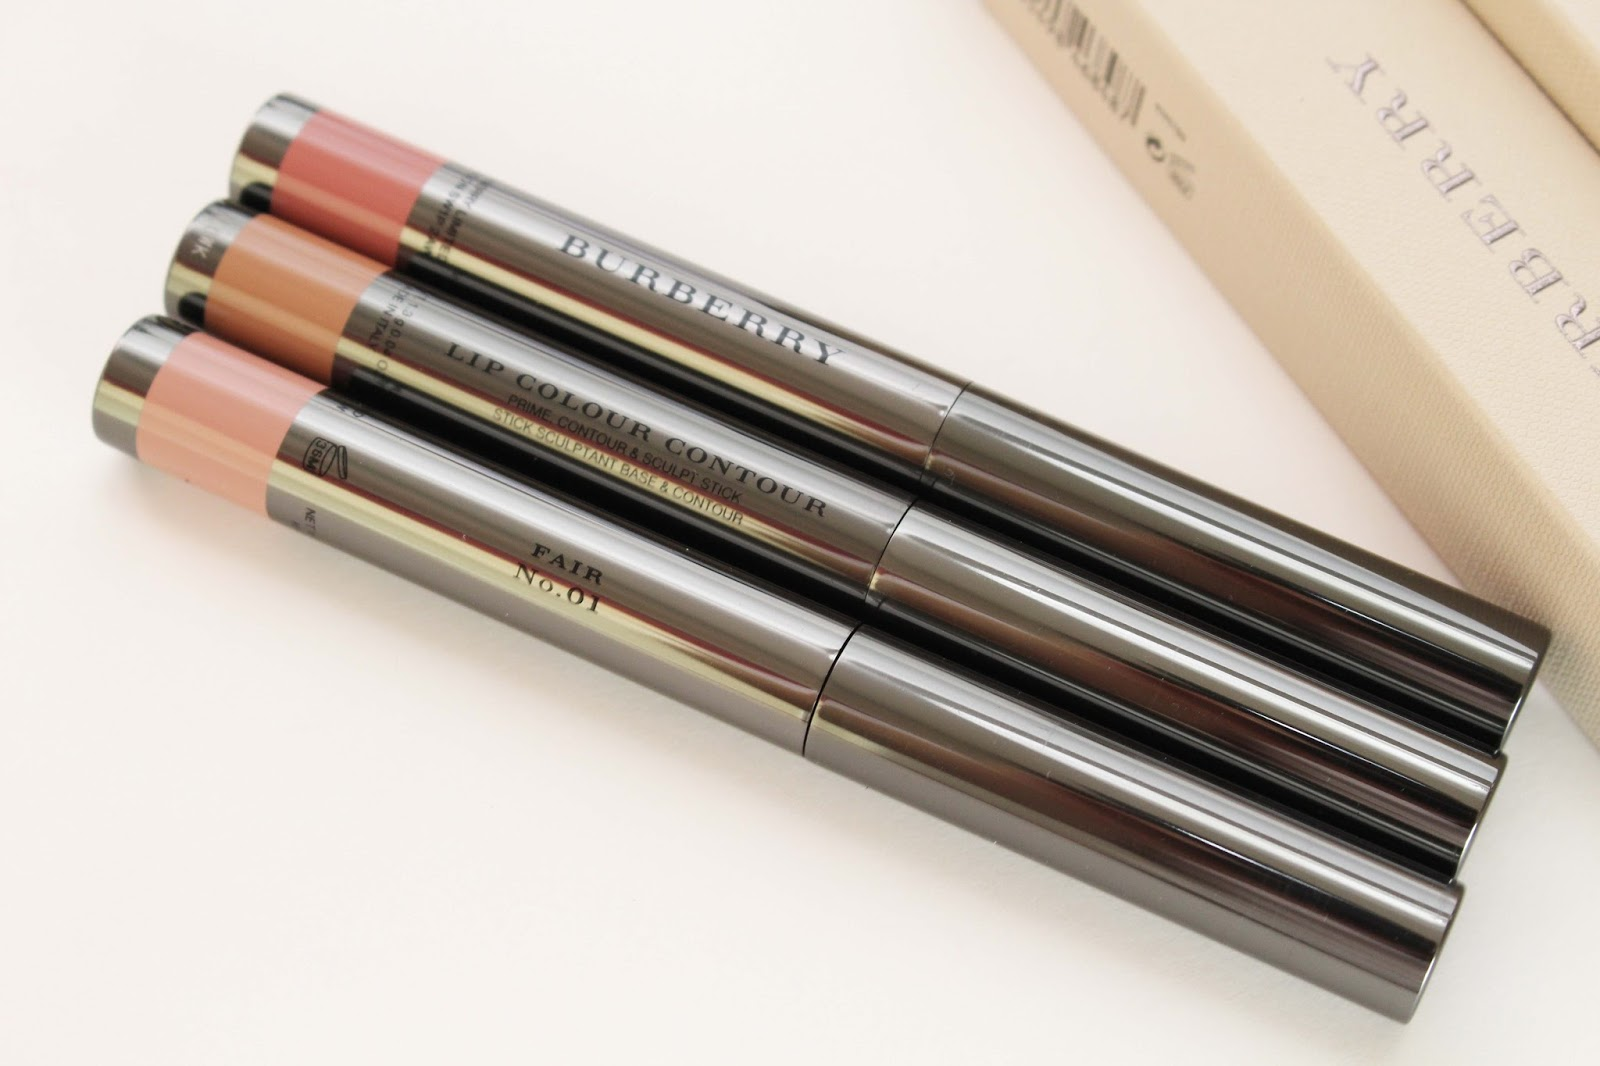 1778622cc656 ... the Burberry Lip Colour Contour on the strength of such fantastic  reviews on the Nordstrom website. First, I ordered Medium No. 3 because in  the swatch ...